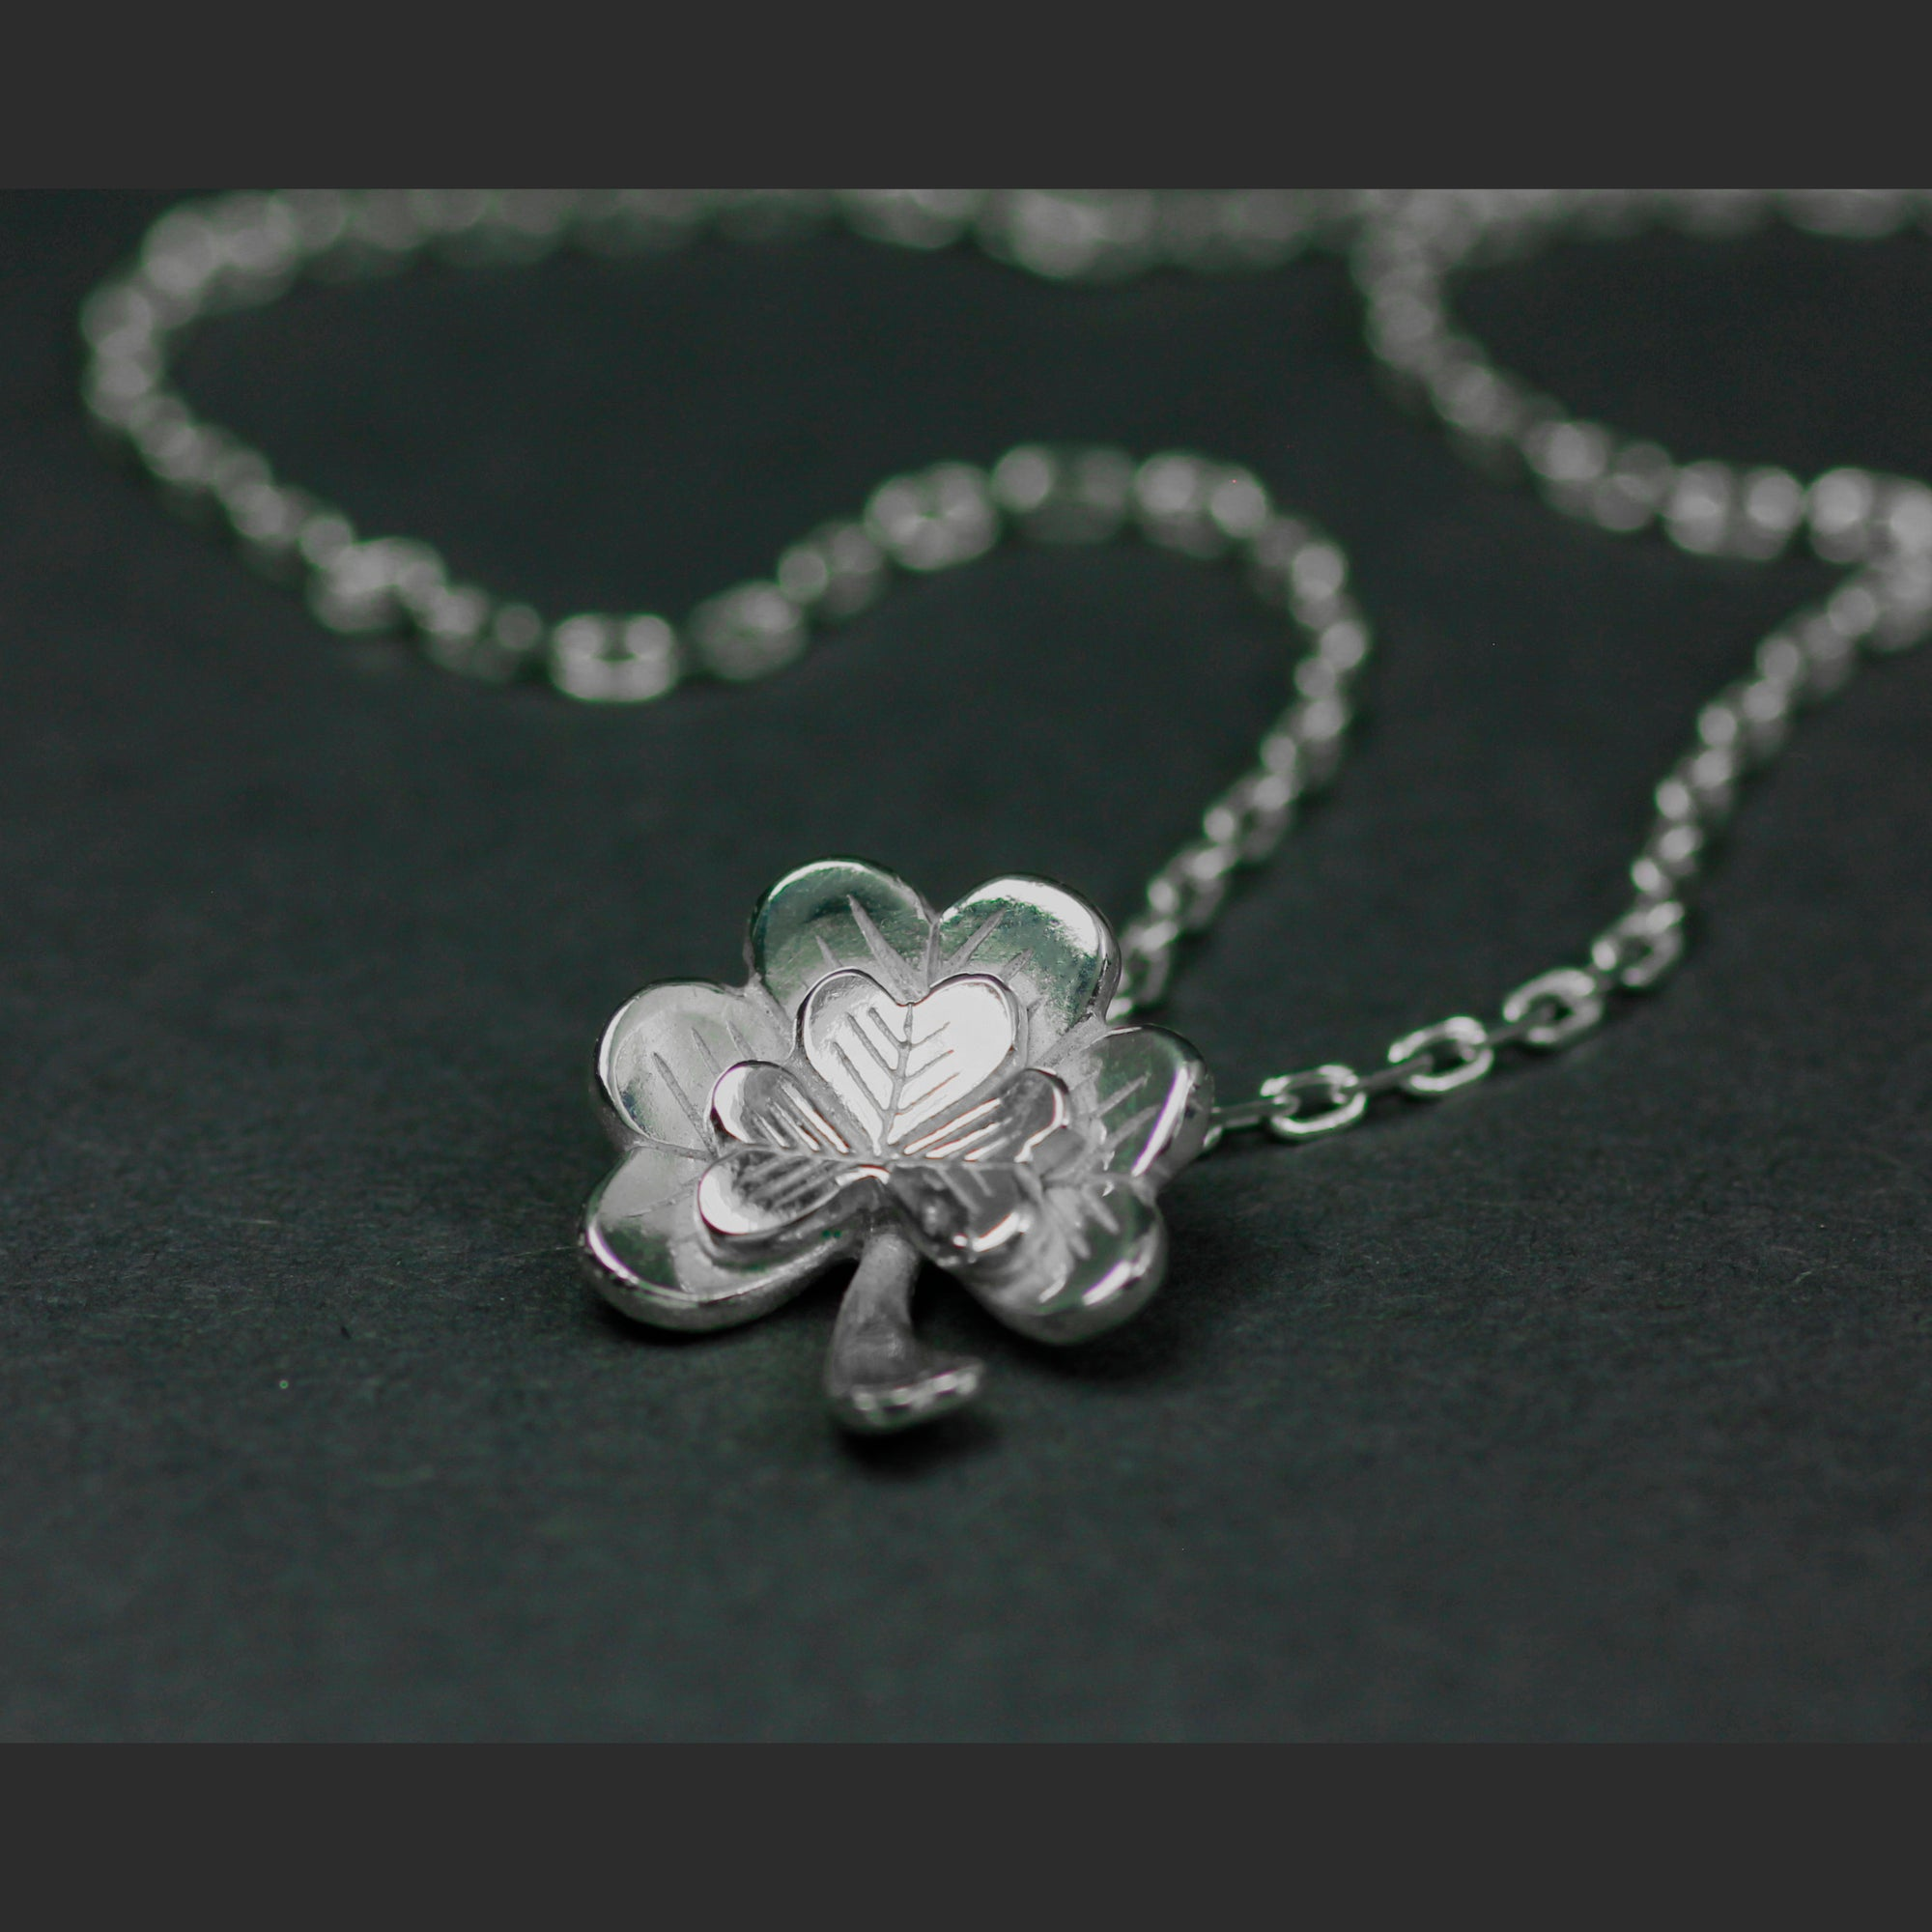 Ireland Forever - Éireann Go Brách Pendant is handcrafted from Sterling Silver by Elena Brennan Jewellery.